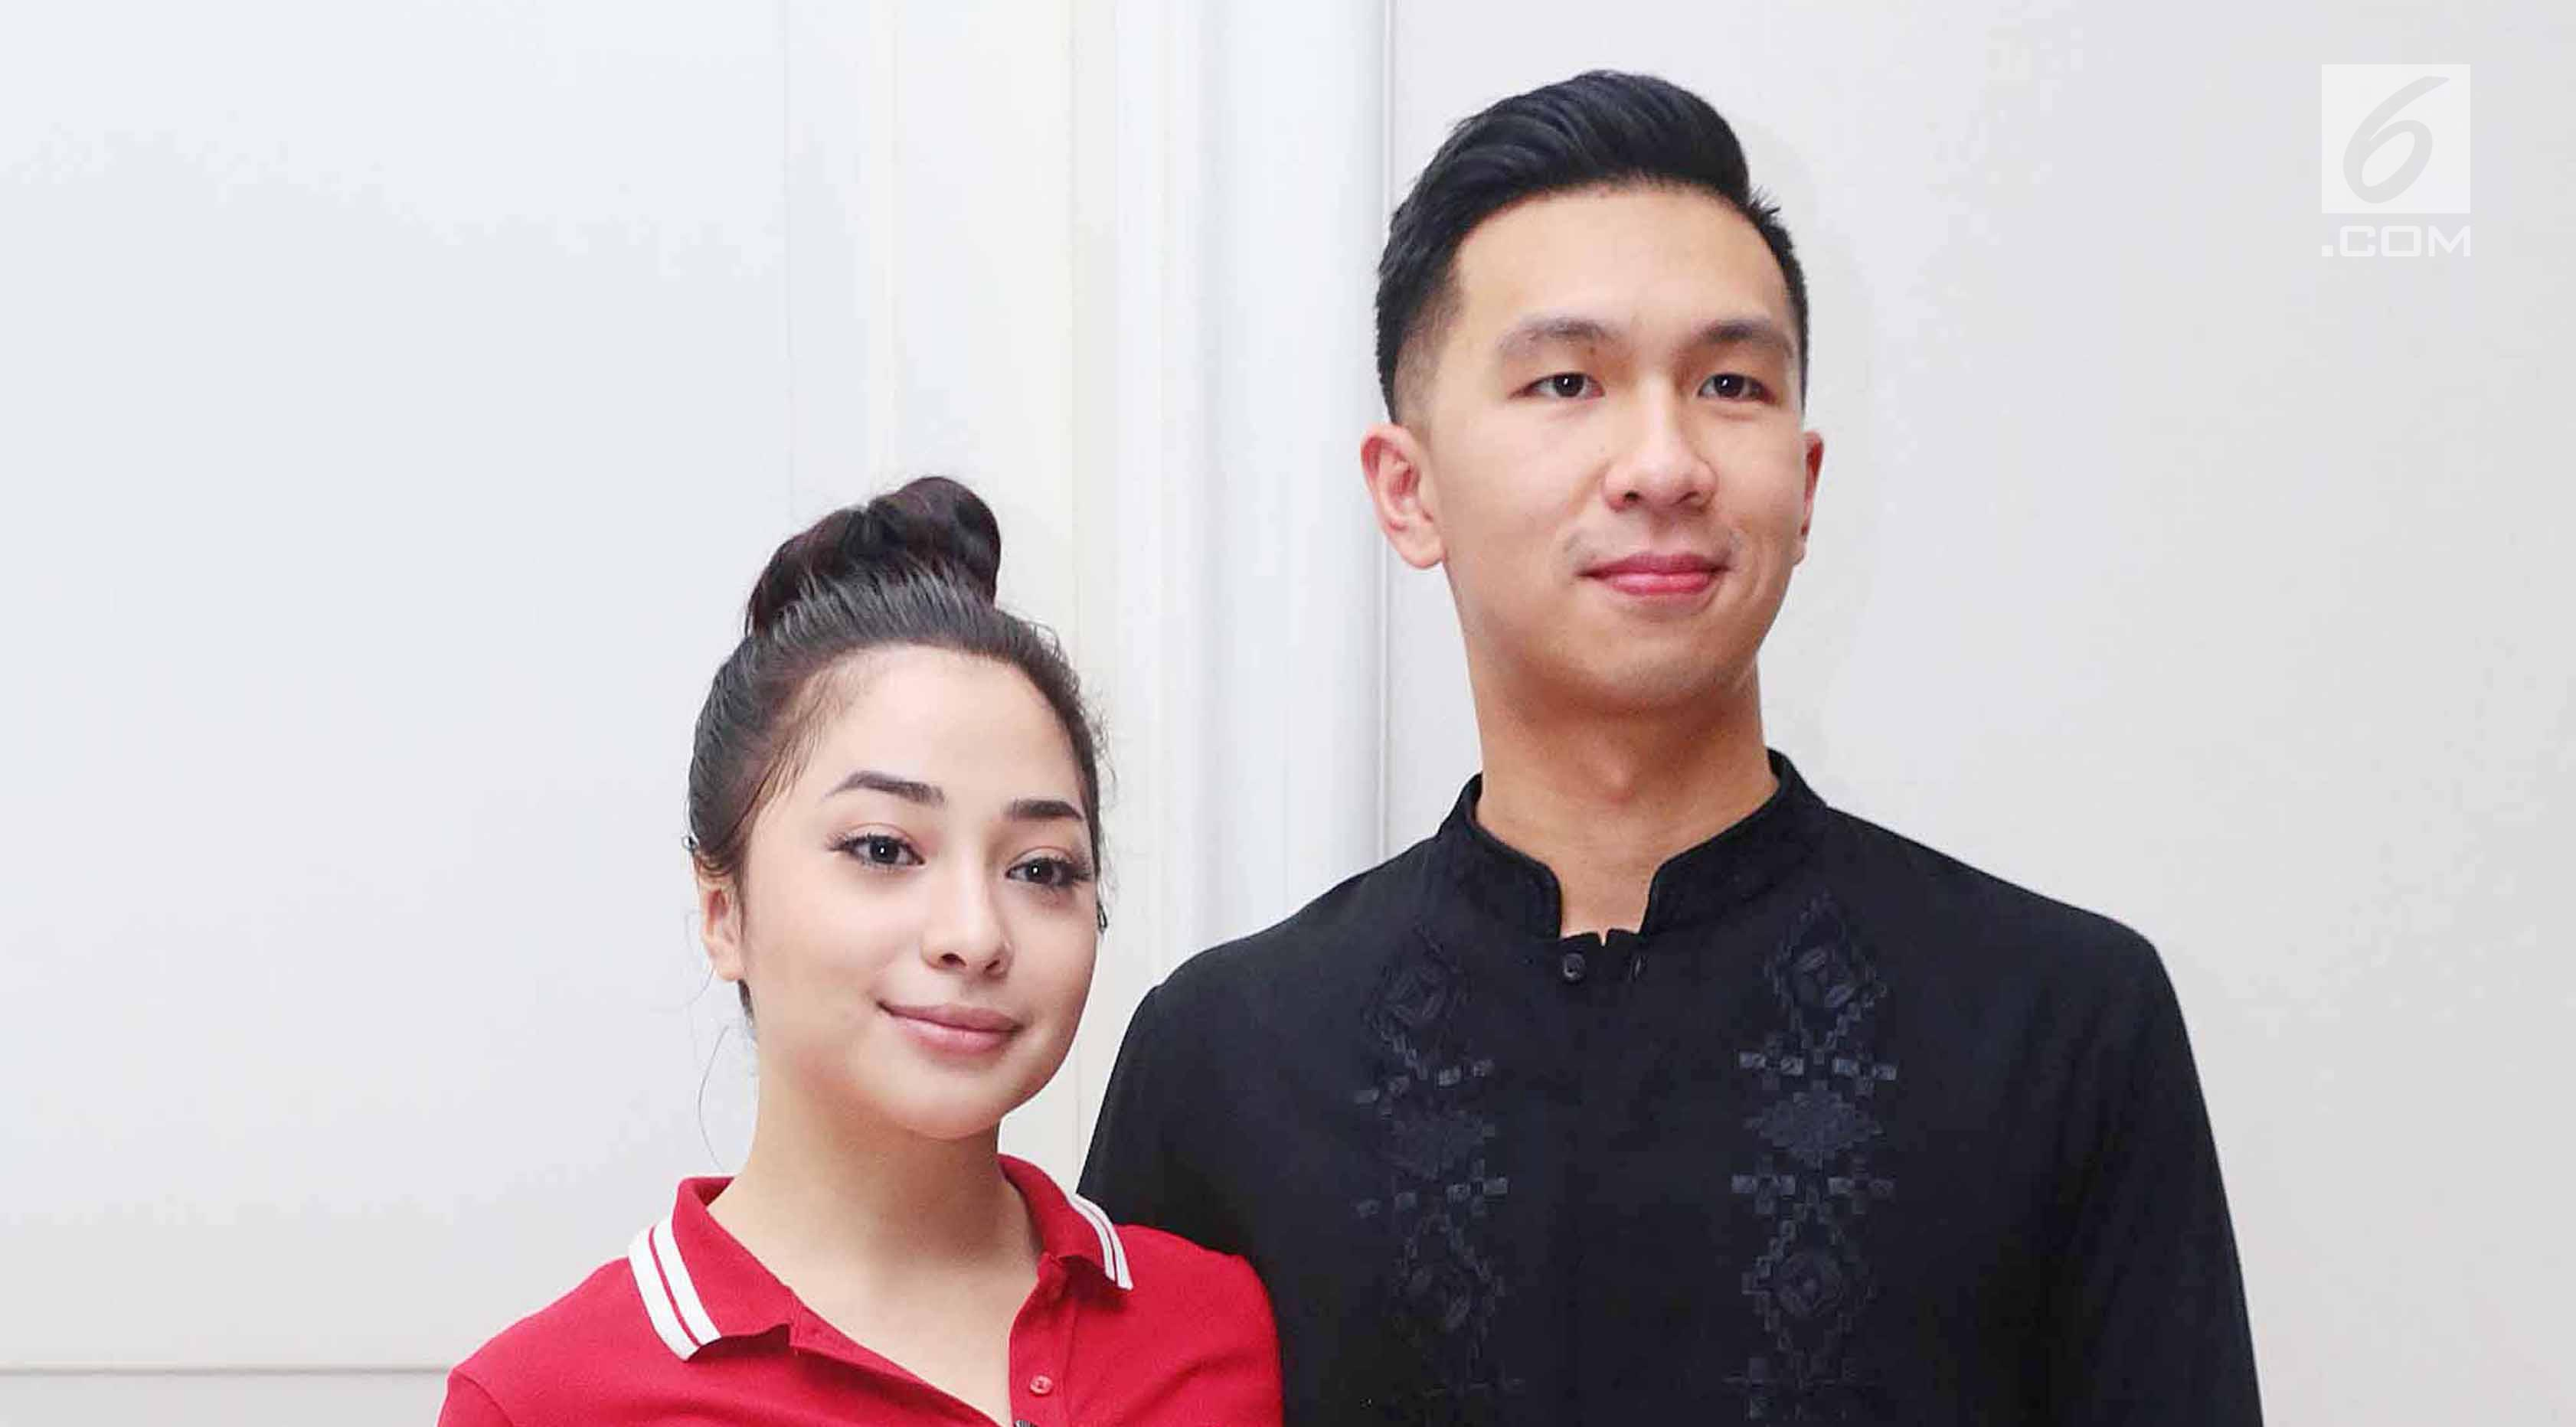 Nikita Willy Potong Daging Kurban Bareng Pacar Showbiz Liputan6 Com